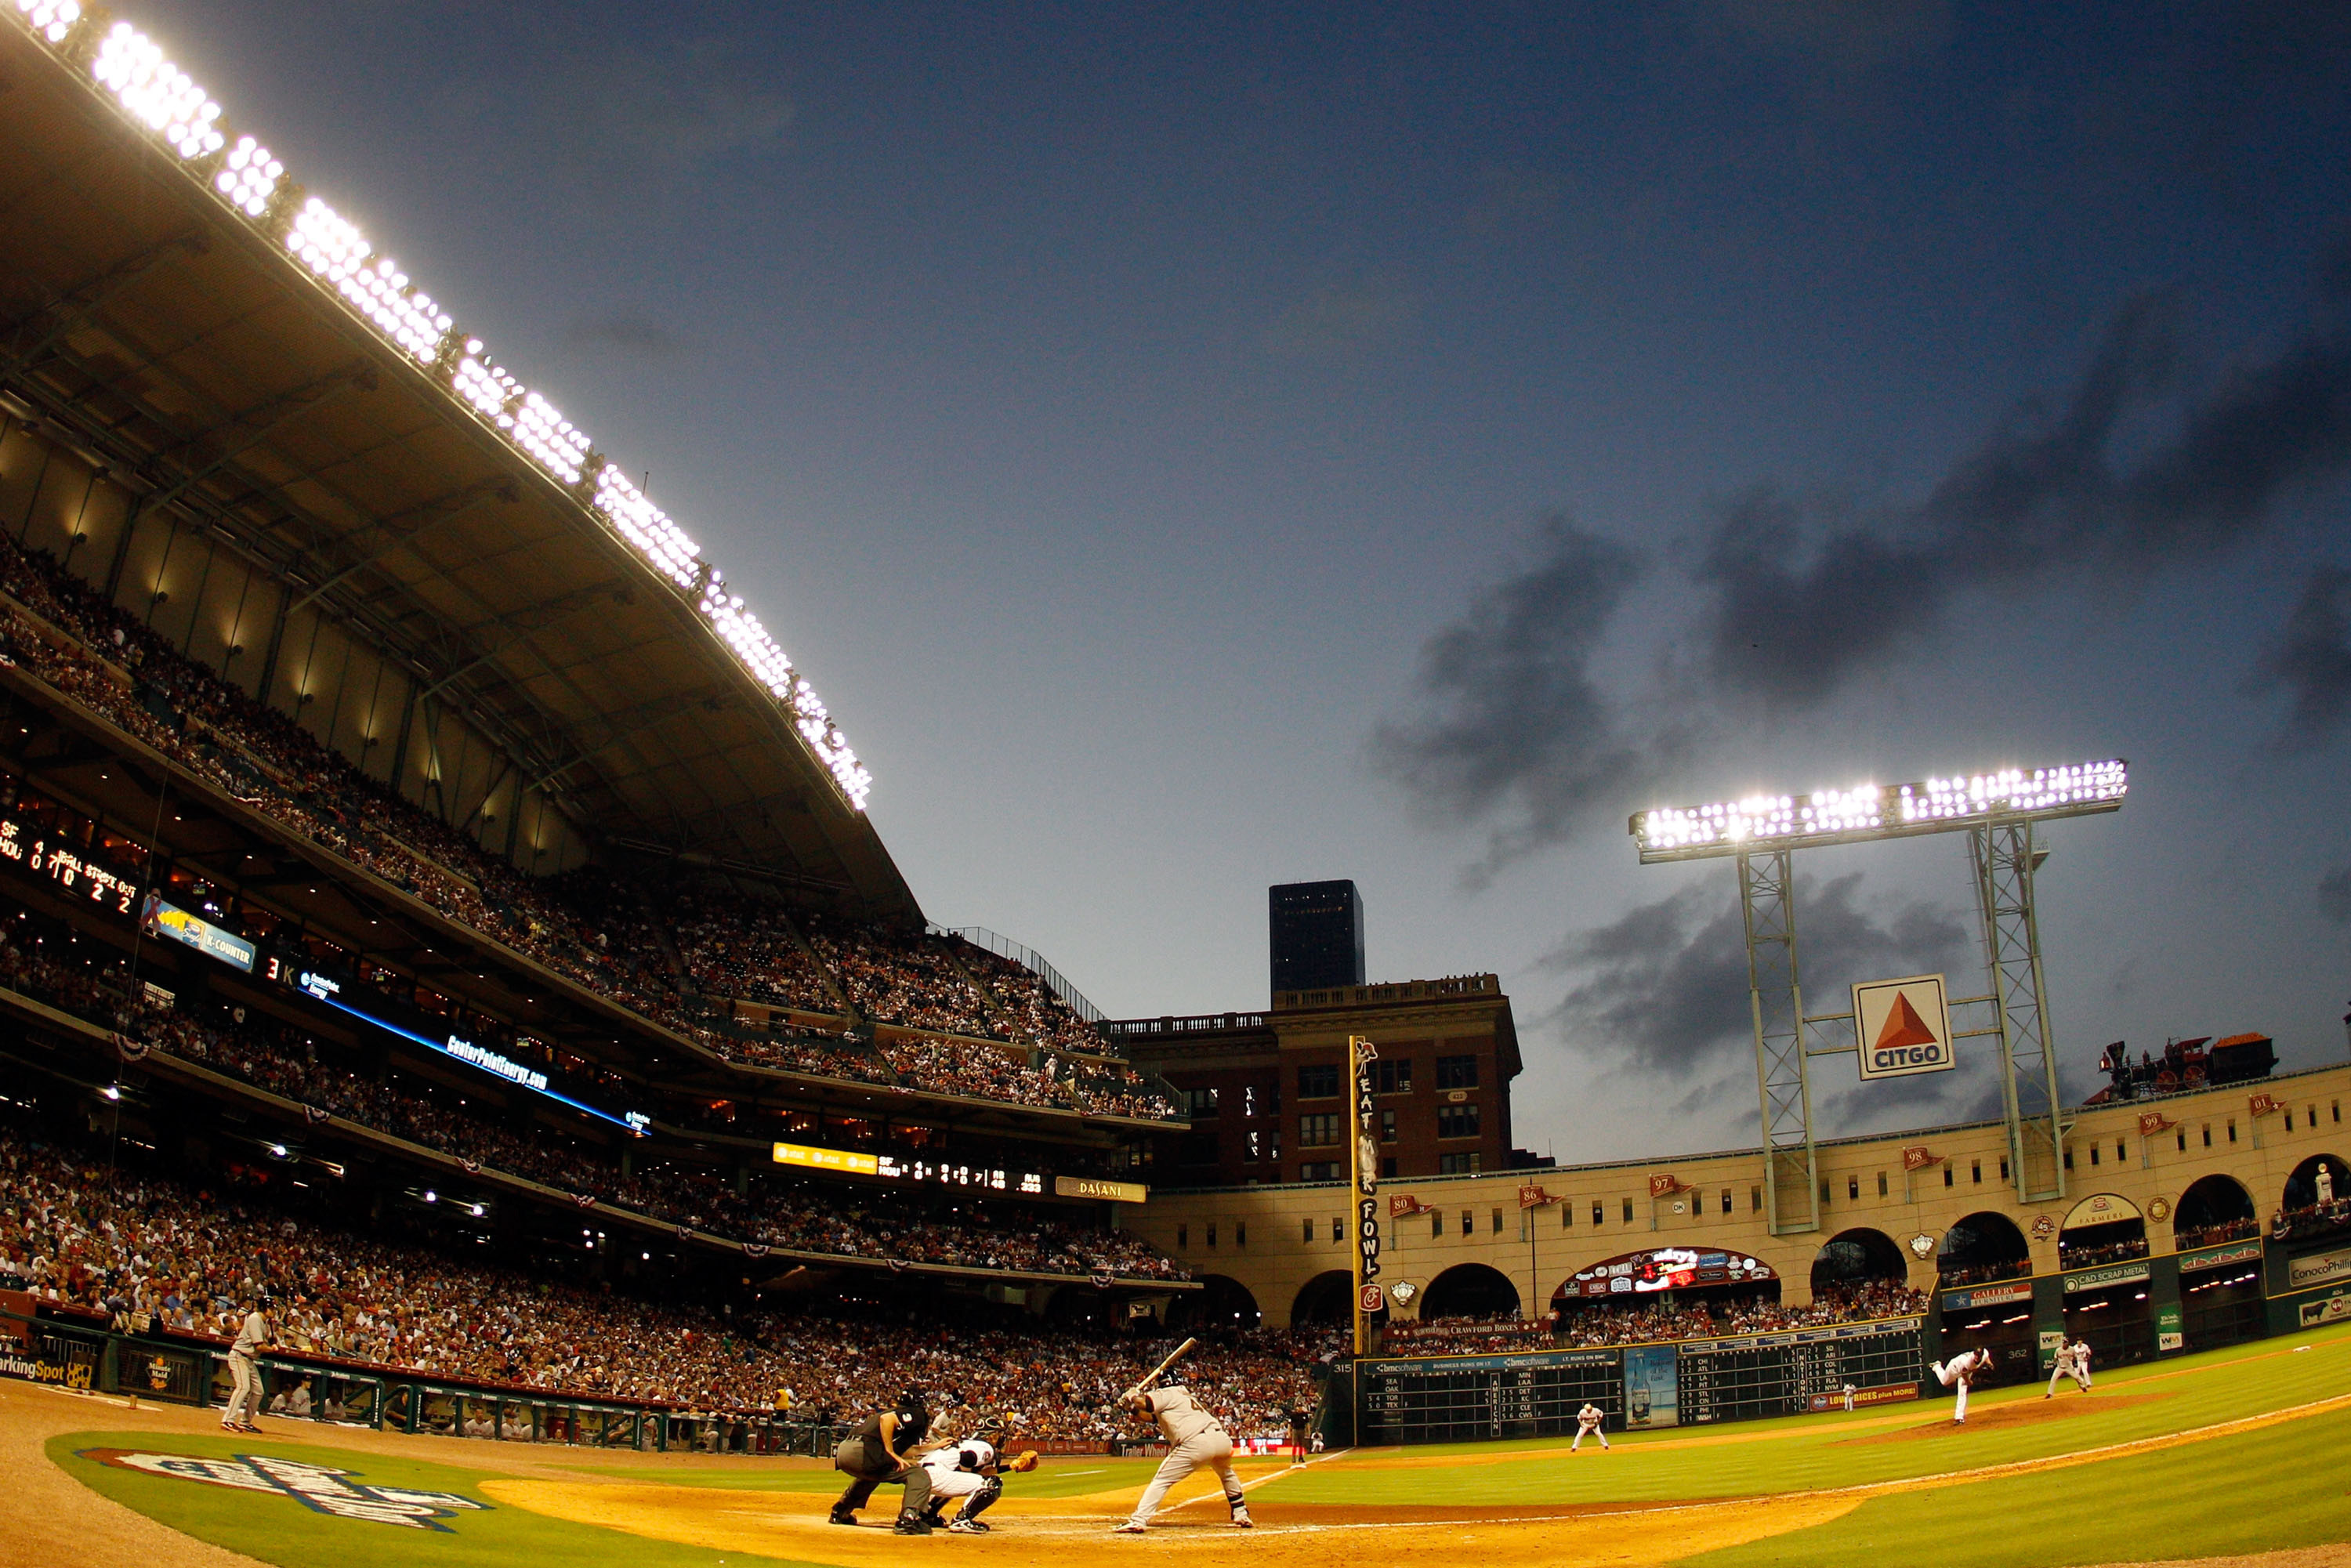 Houston Astros, High Quality Wallpapers For Free